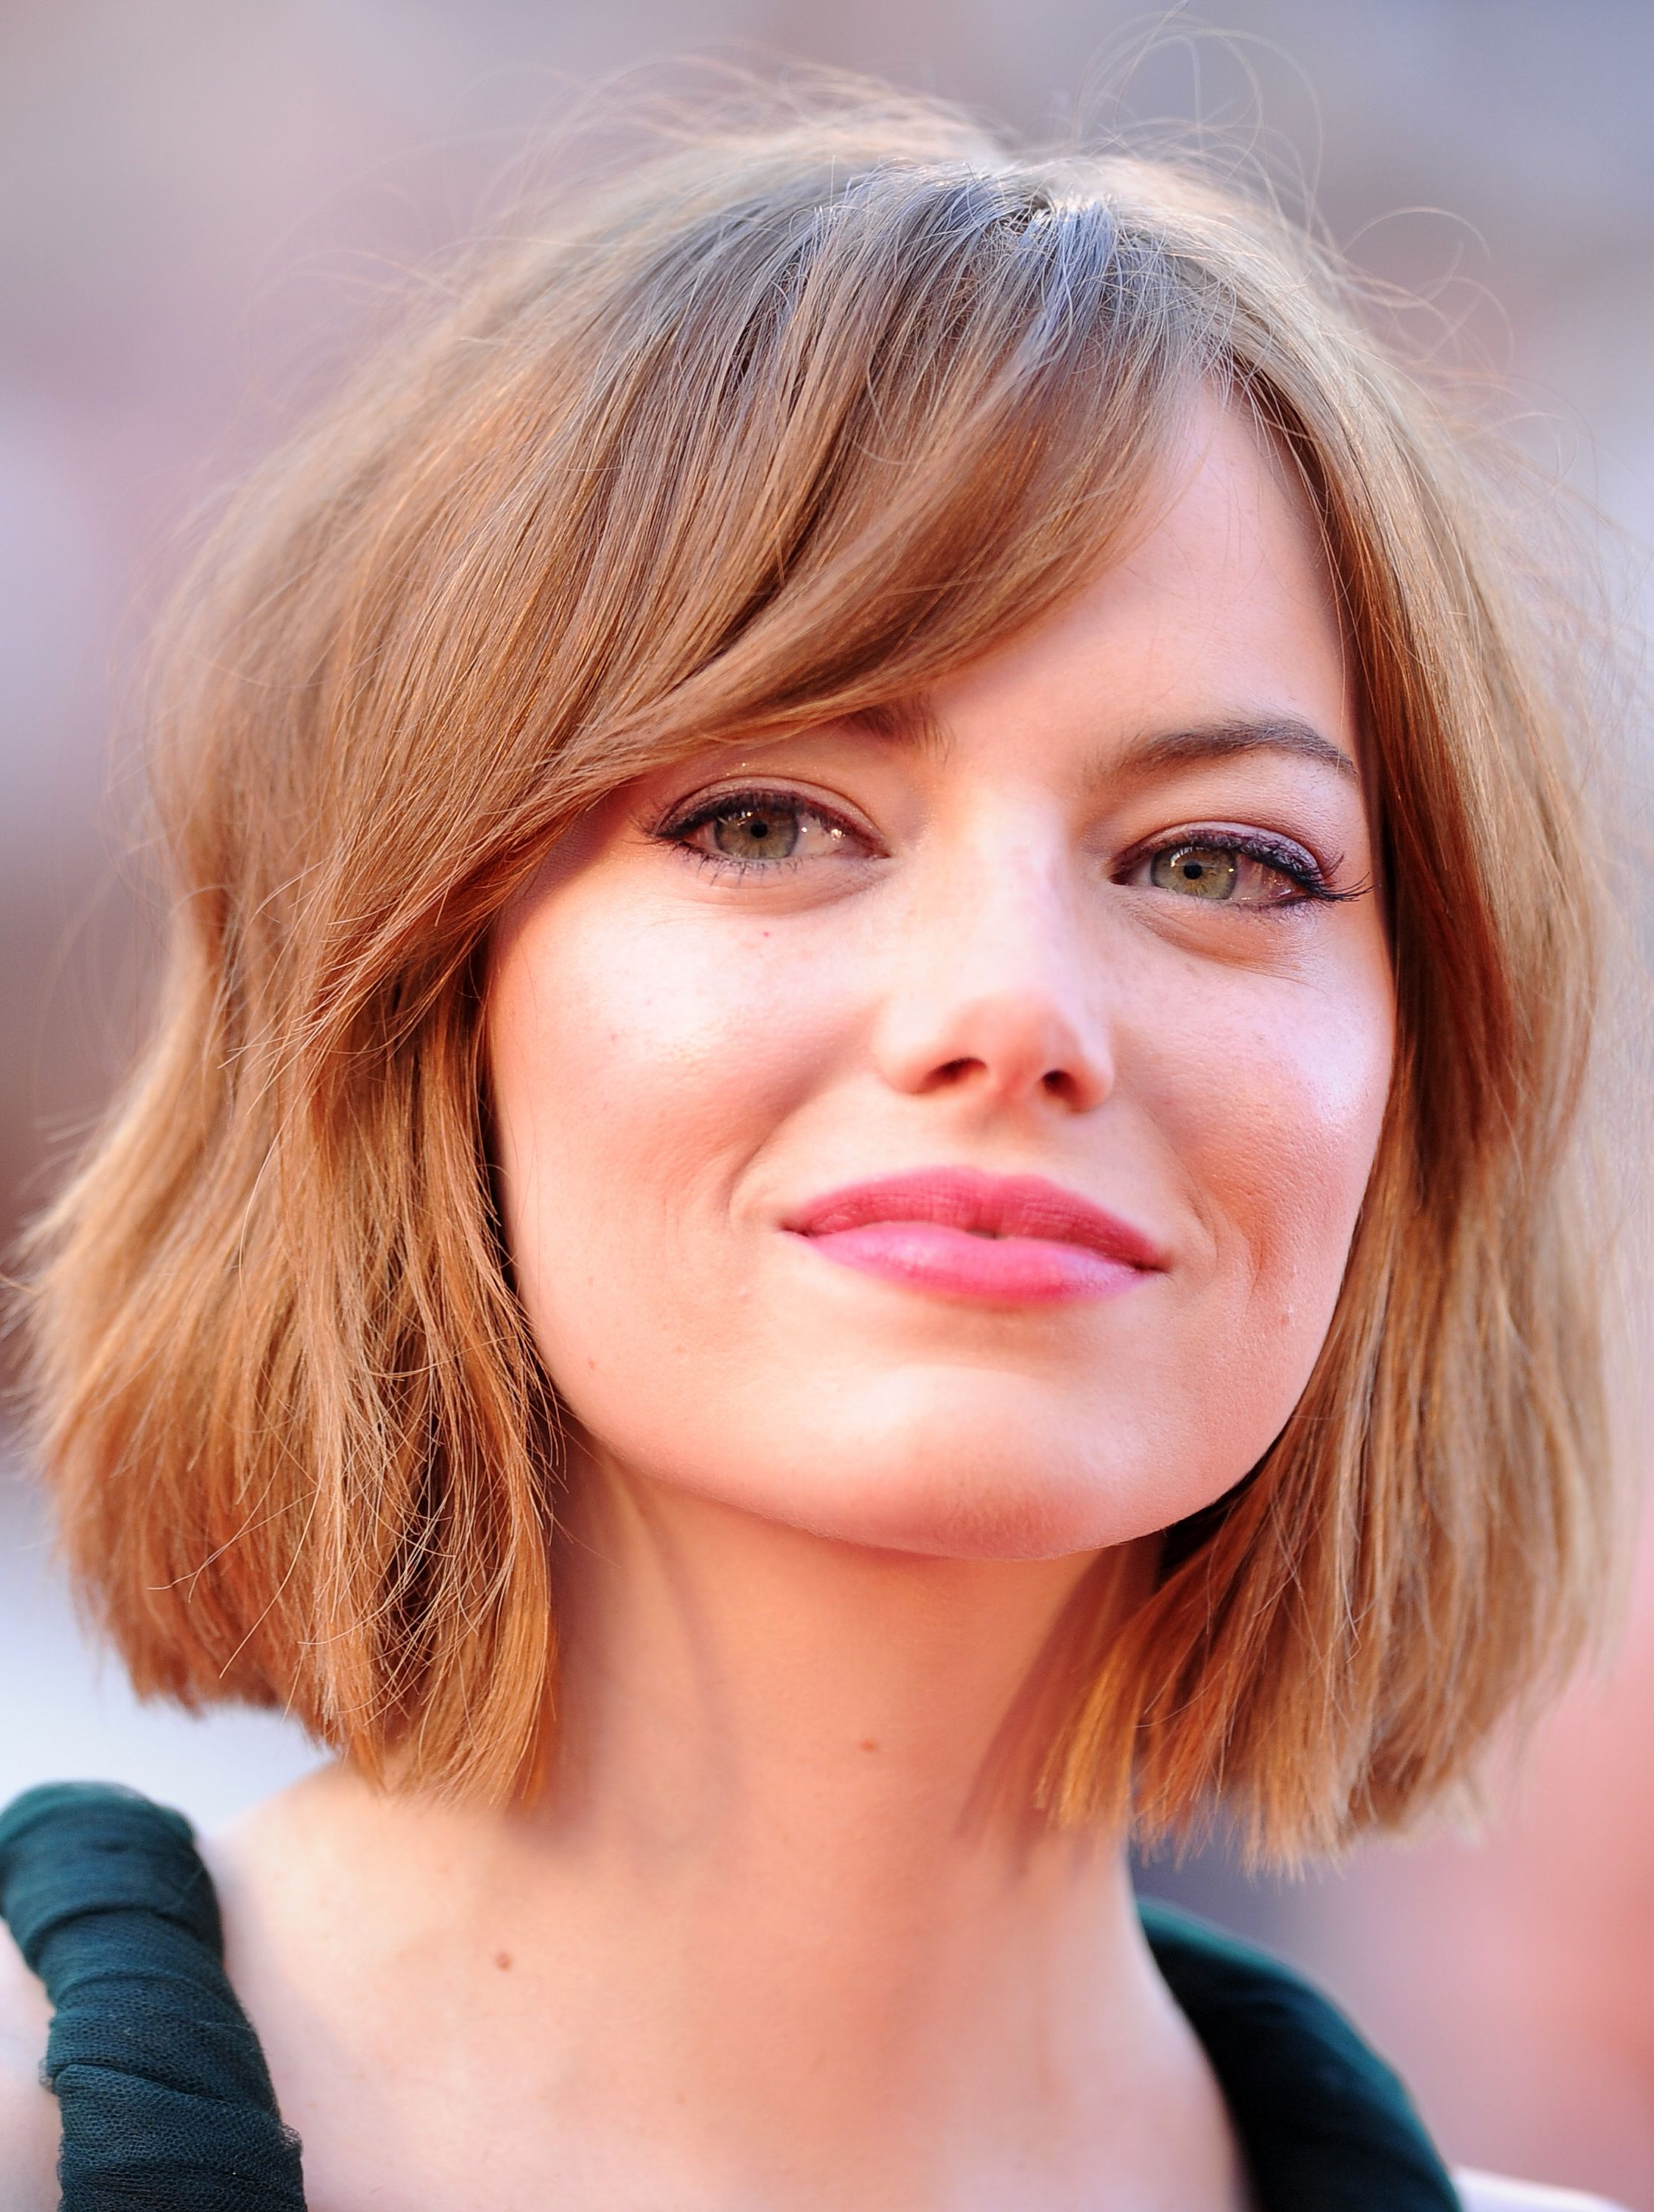 Bob Hairstyles For 2018 – 53 Short Haircut Trends To Try Now For Lauren Conrad Short Haircuts (View 22 of 25)